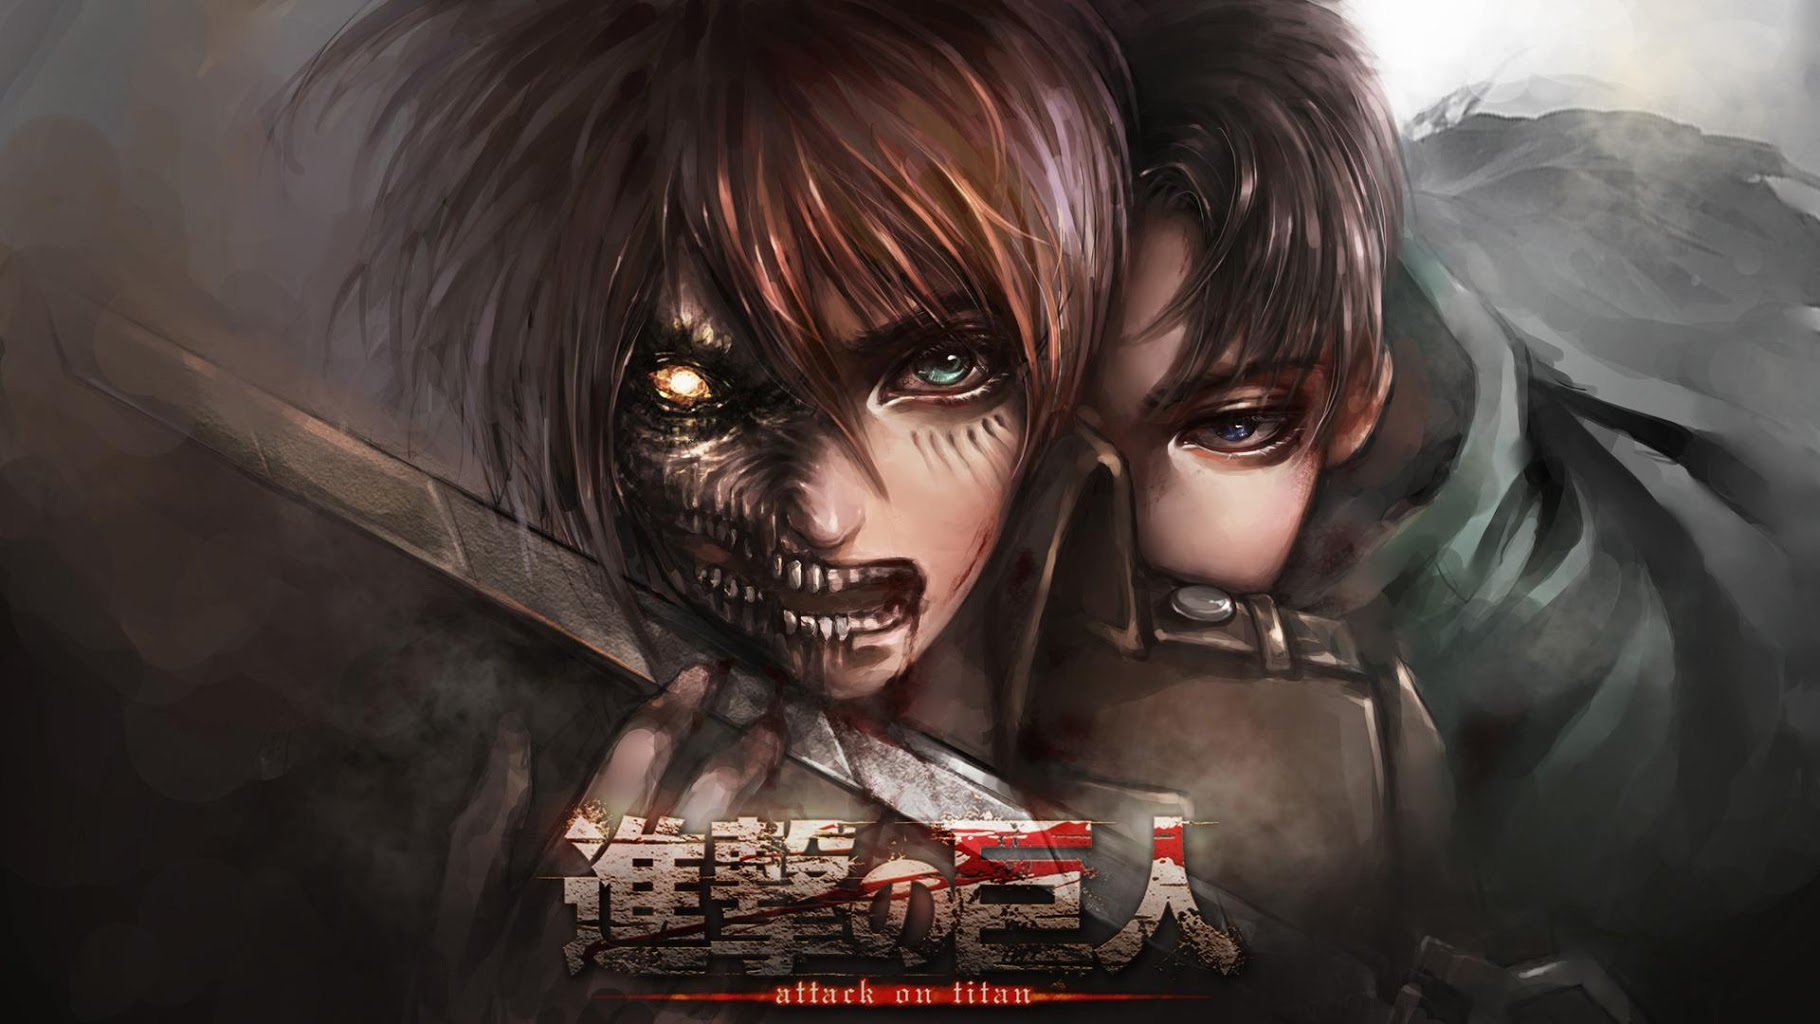 attack-on-titan-hd-Google-Search-wallpaper-wp42148